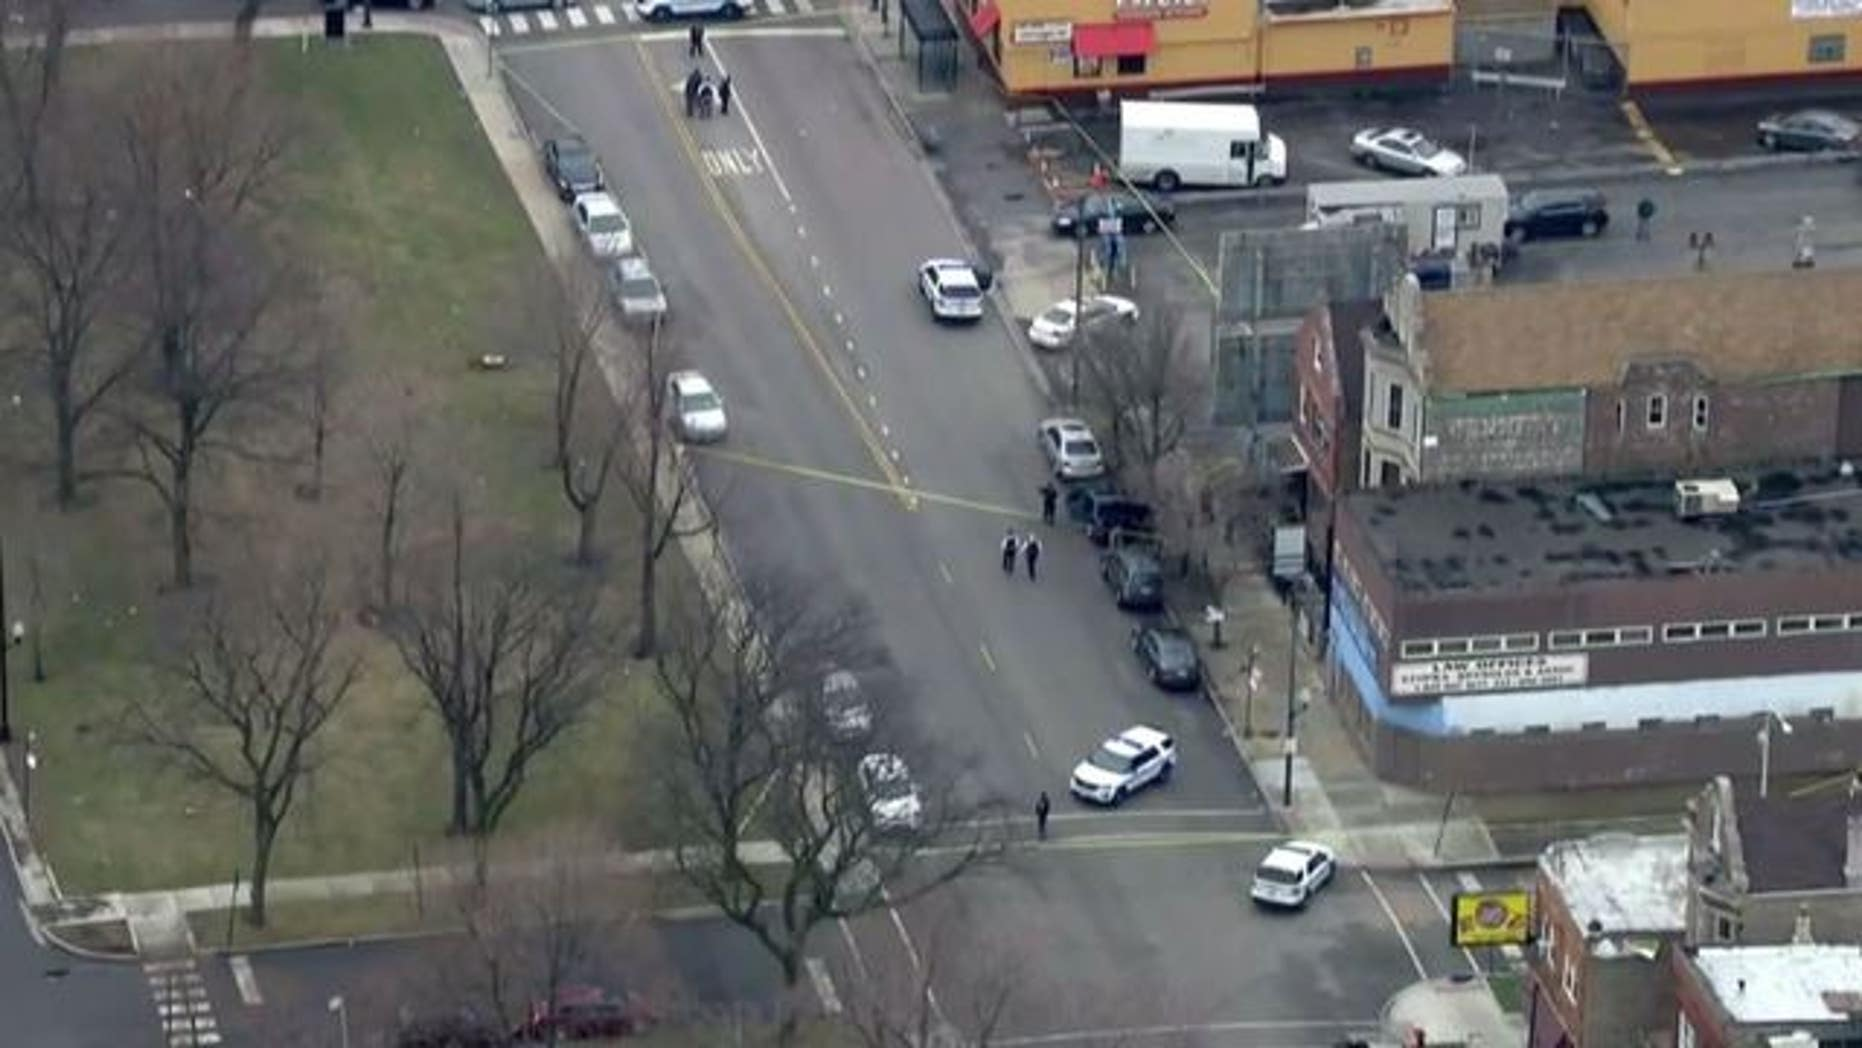 The shooting scene in Chicago.